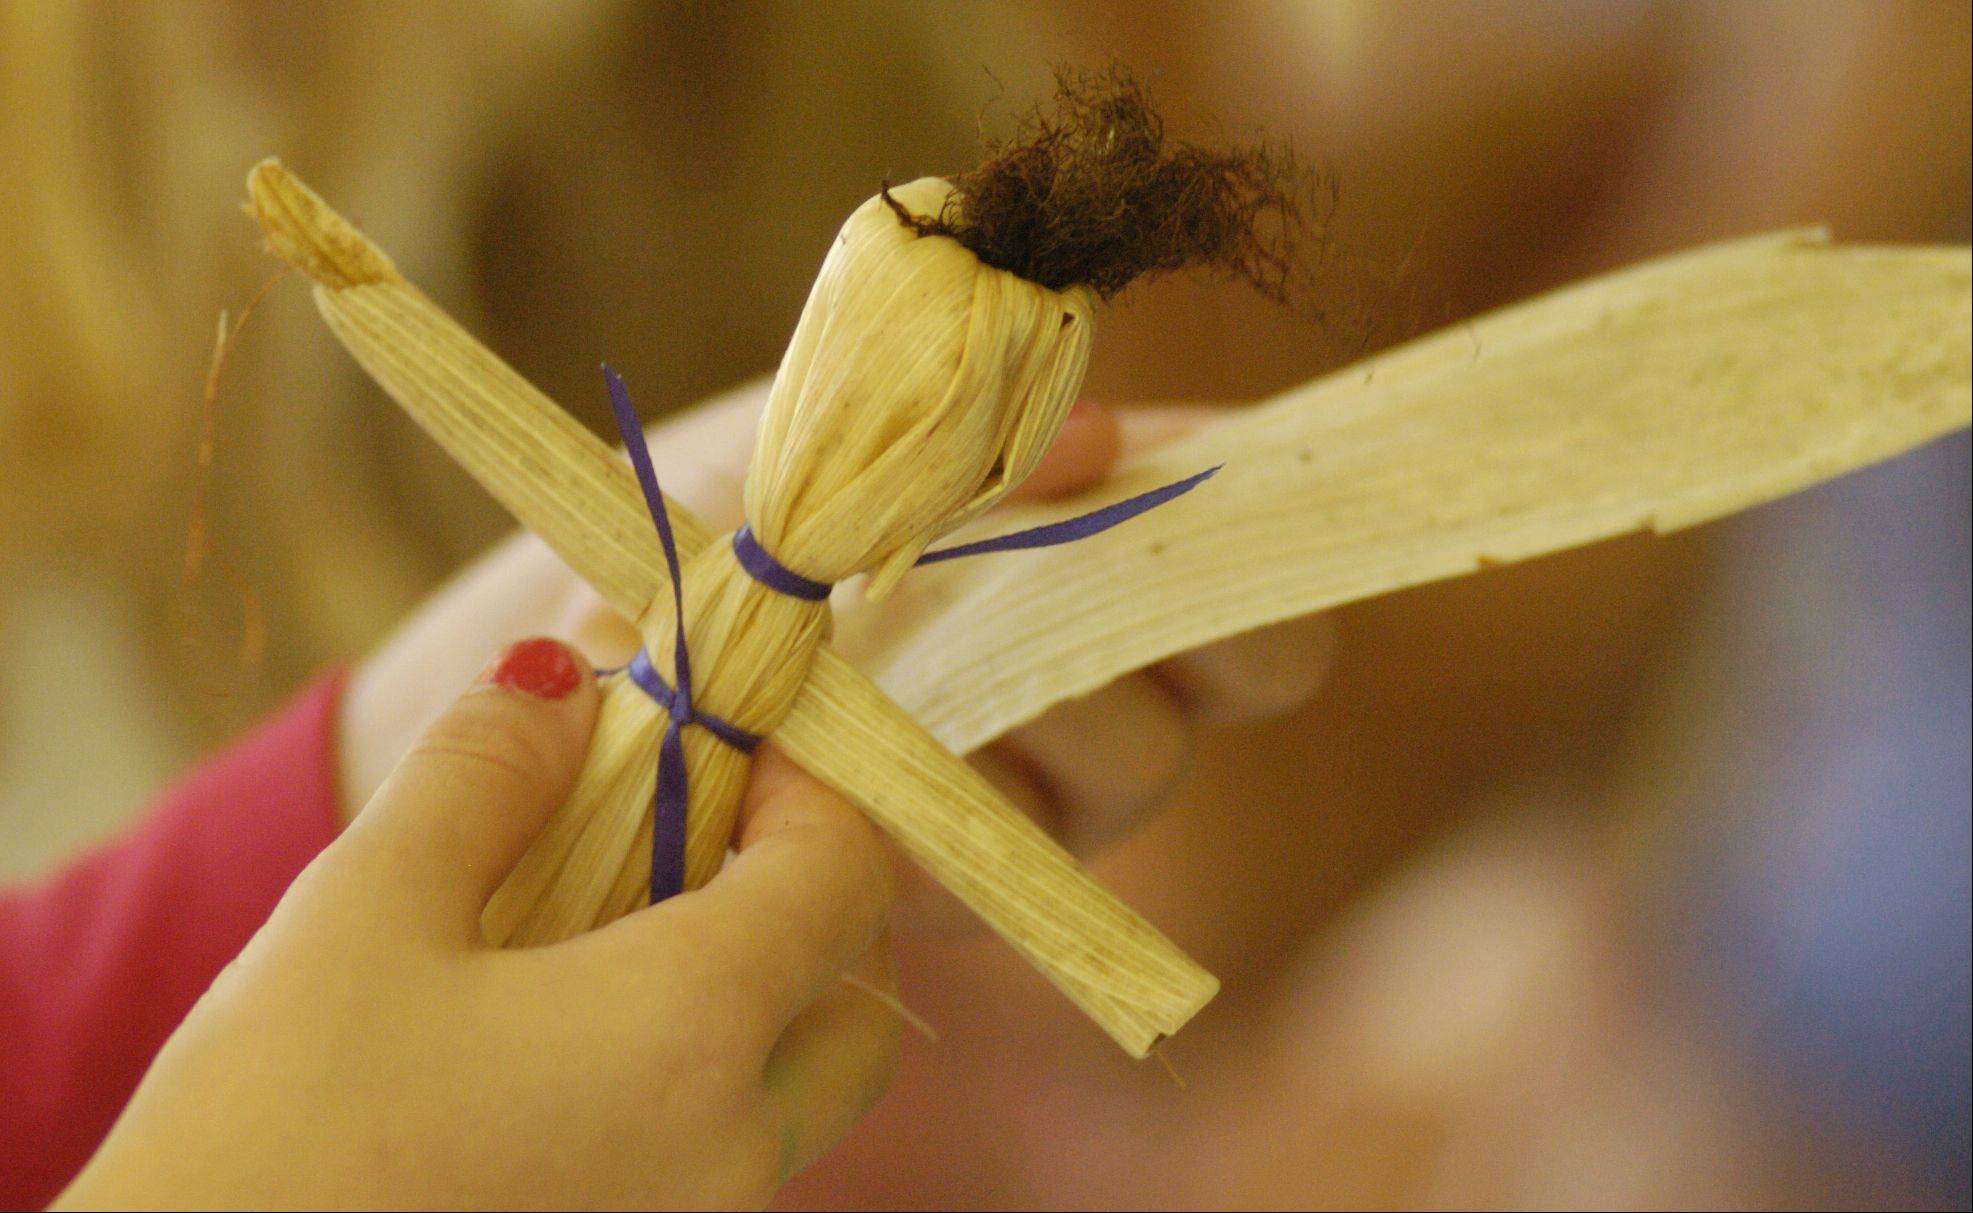 Making corn husk dolls -- once a diversion from pioneer families' chores -- is a novel activity for today's children and adults.